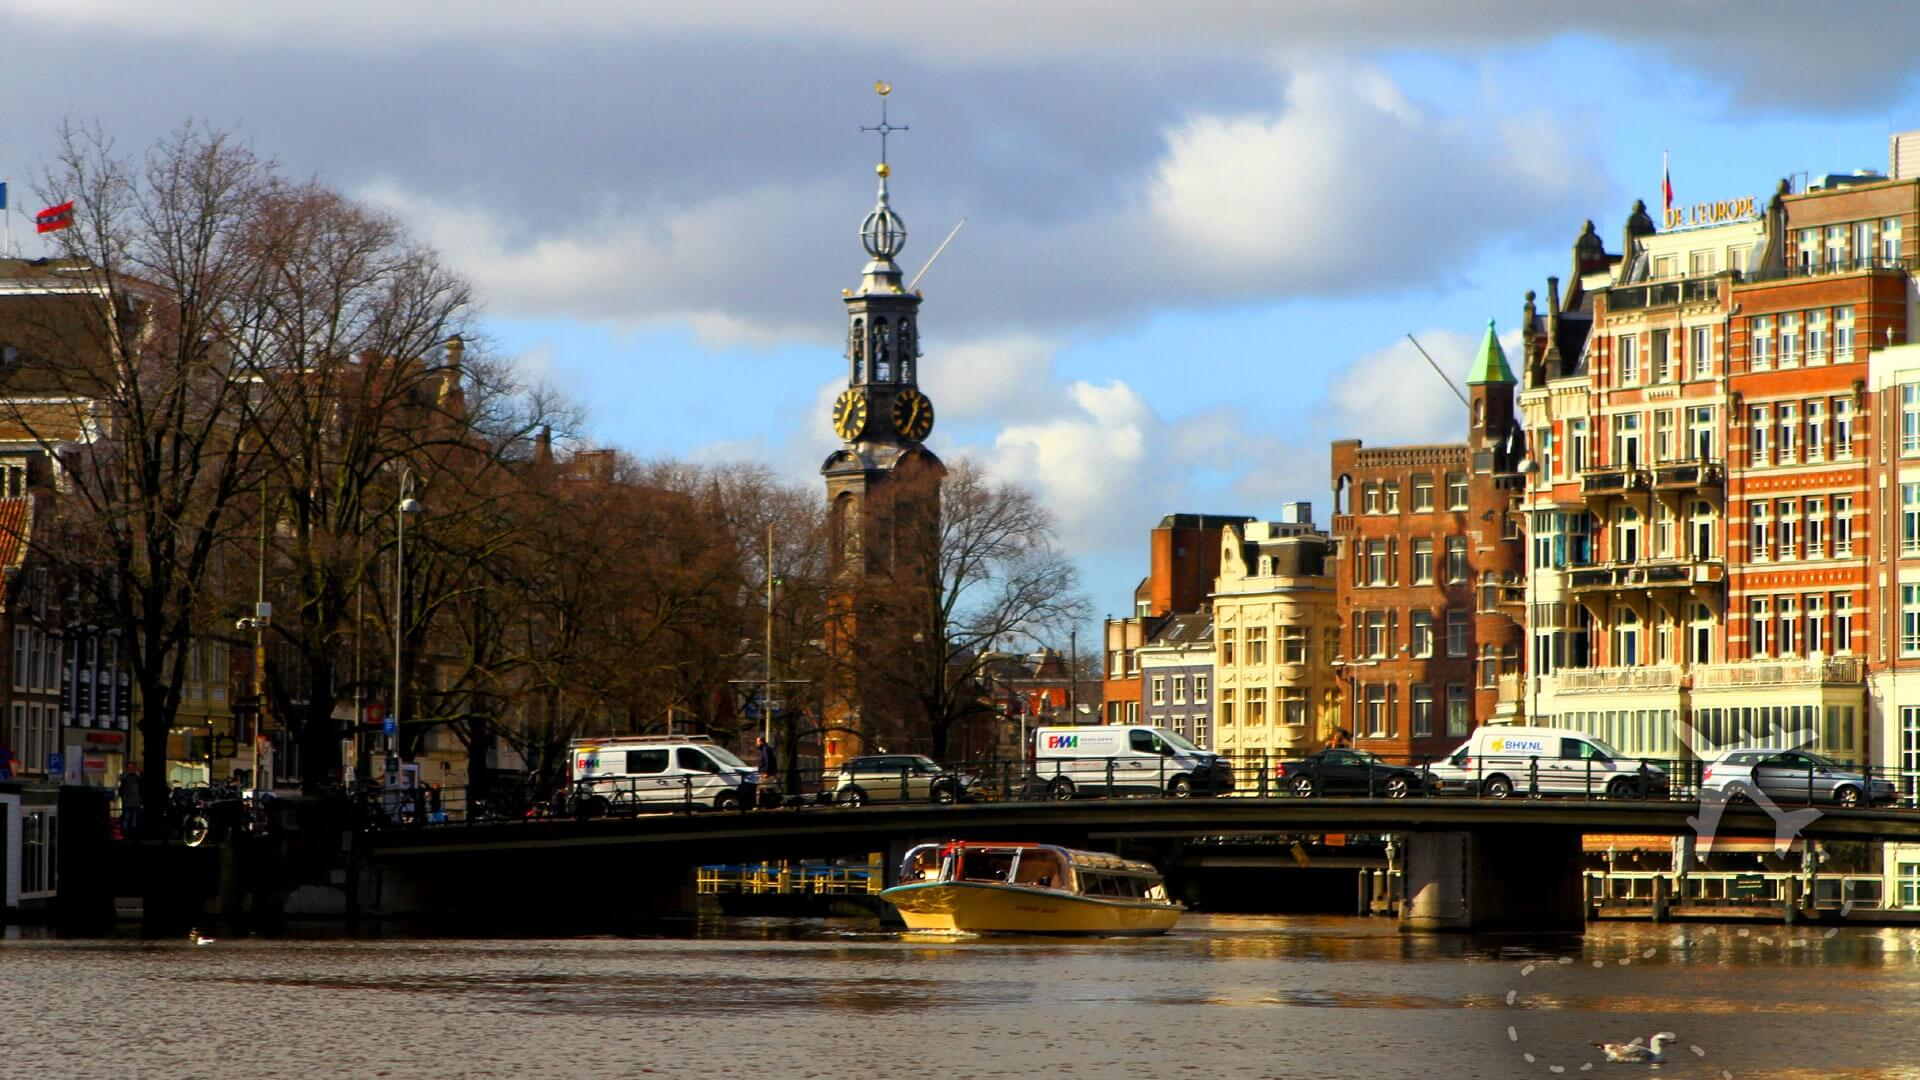 Amsterdam by canal boat